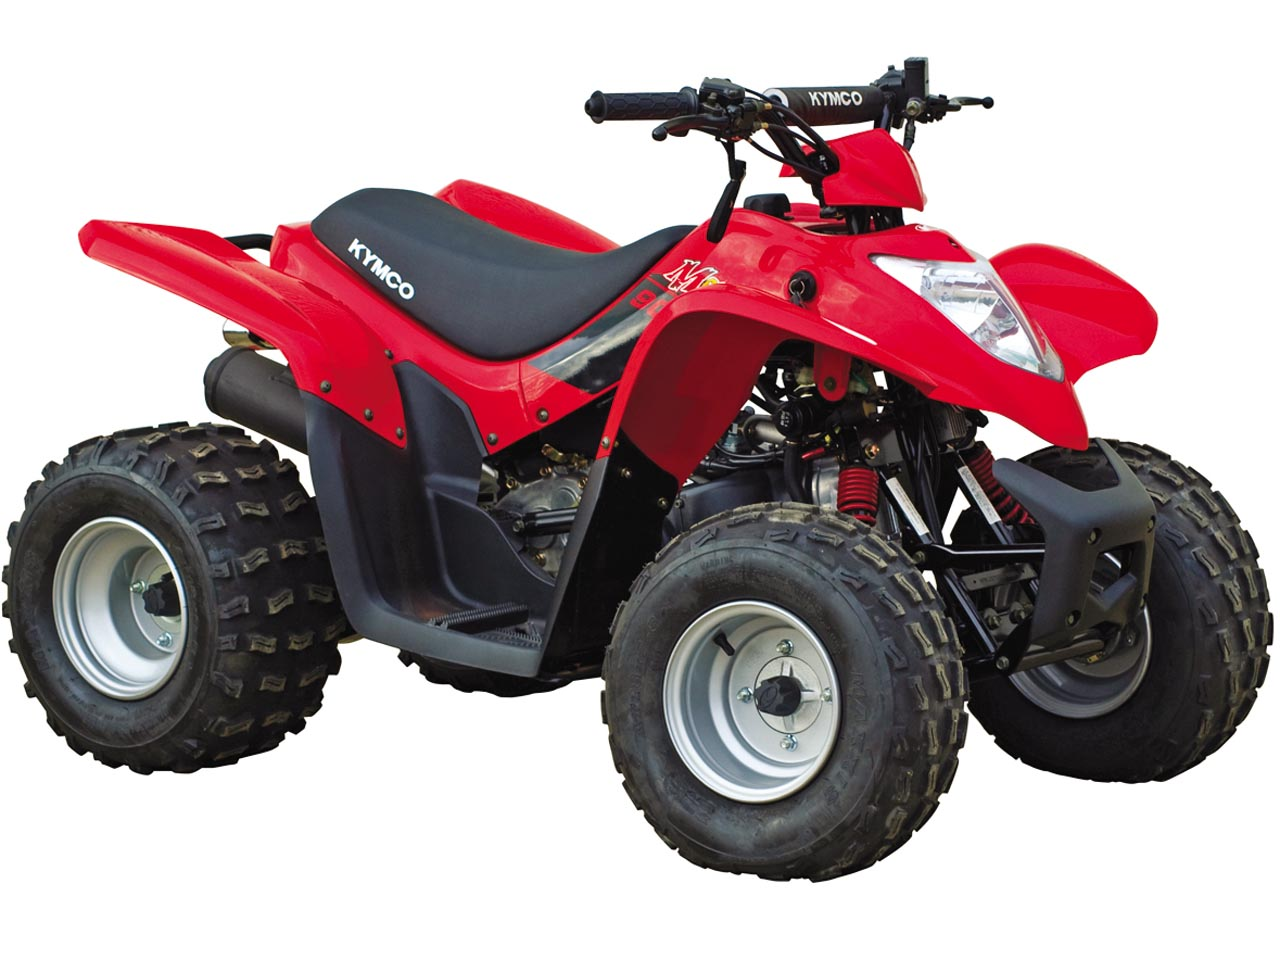 Youth Quad Round Up - Mini Quad Buyer's Guide | ATV Illustrated